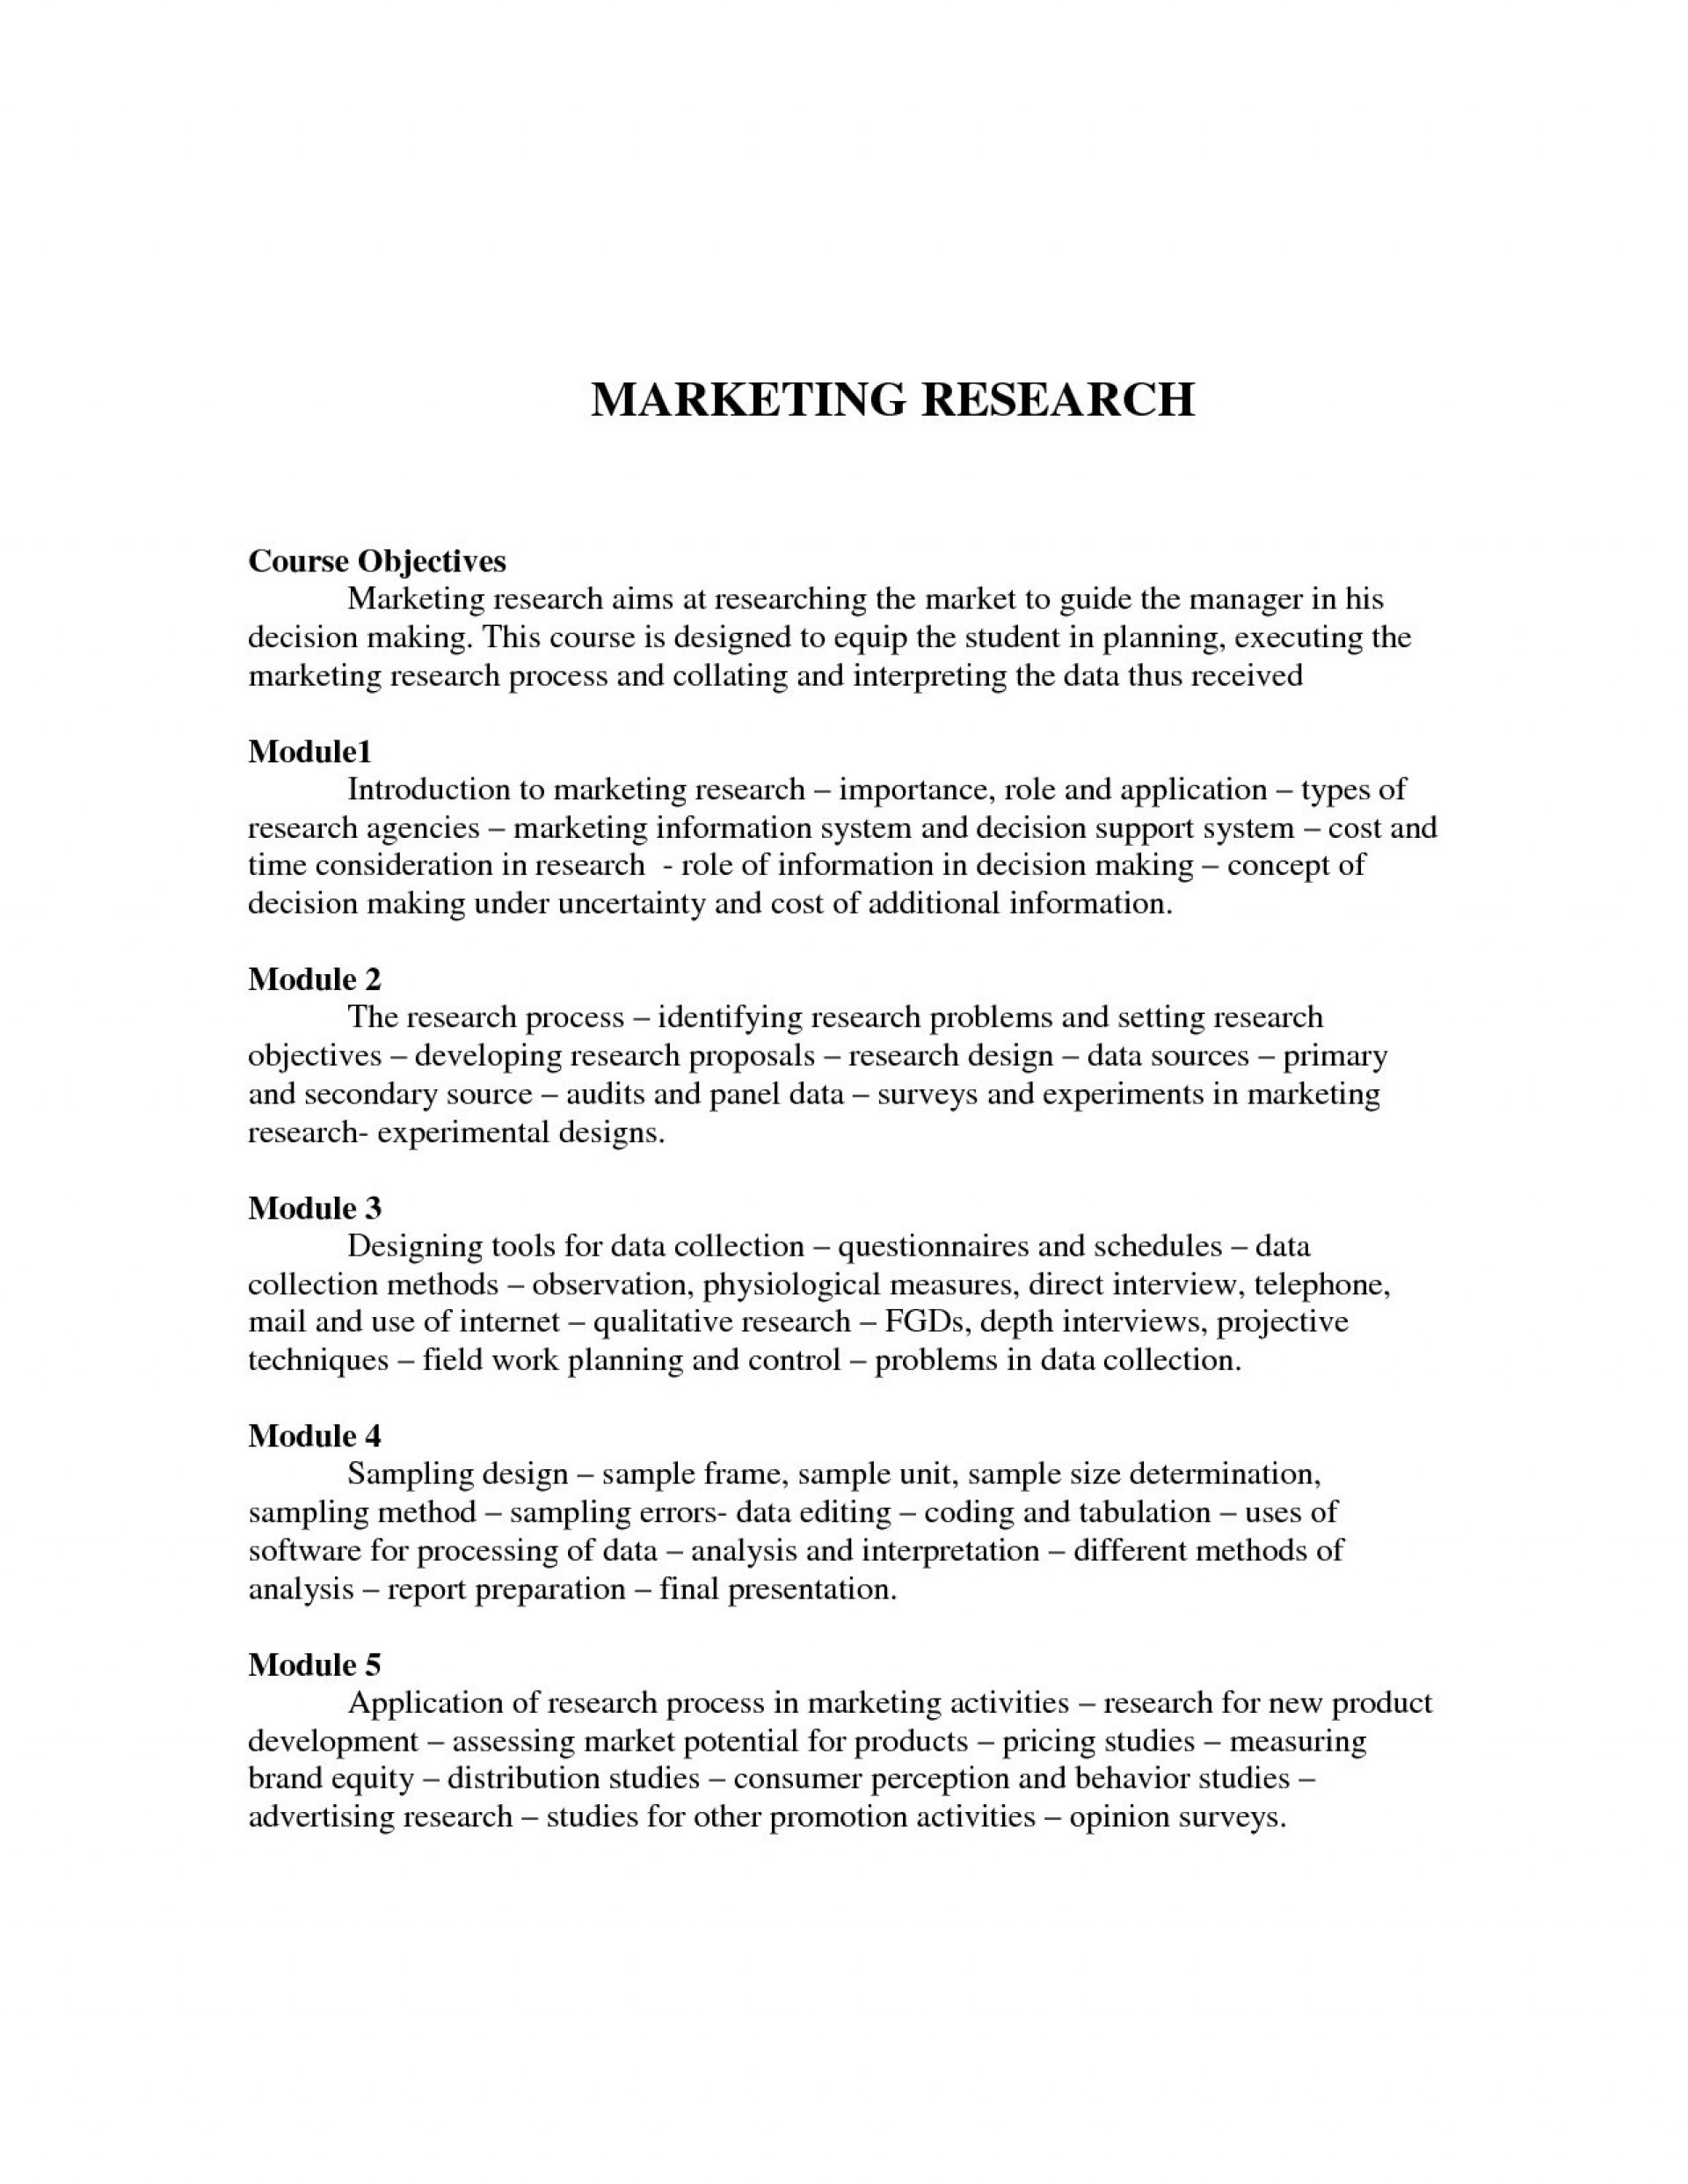 Research Plan Template Pricing Proposal Inspirational Business For Pricing Proposal Template